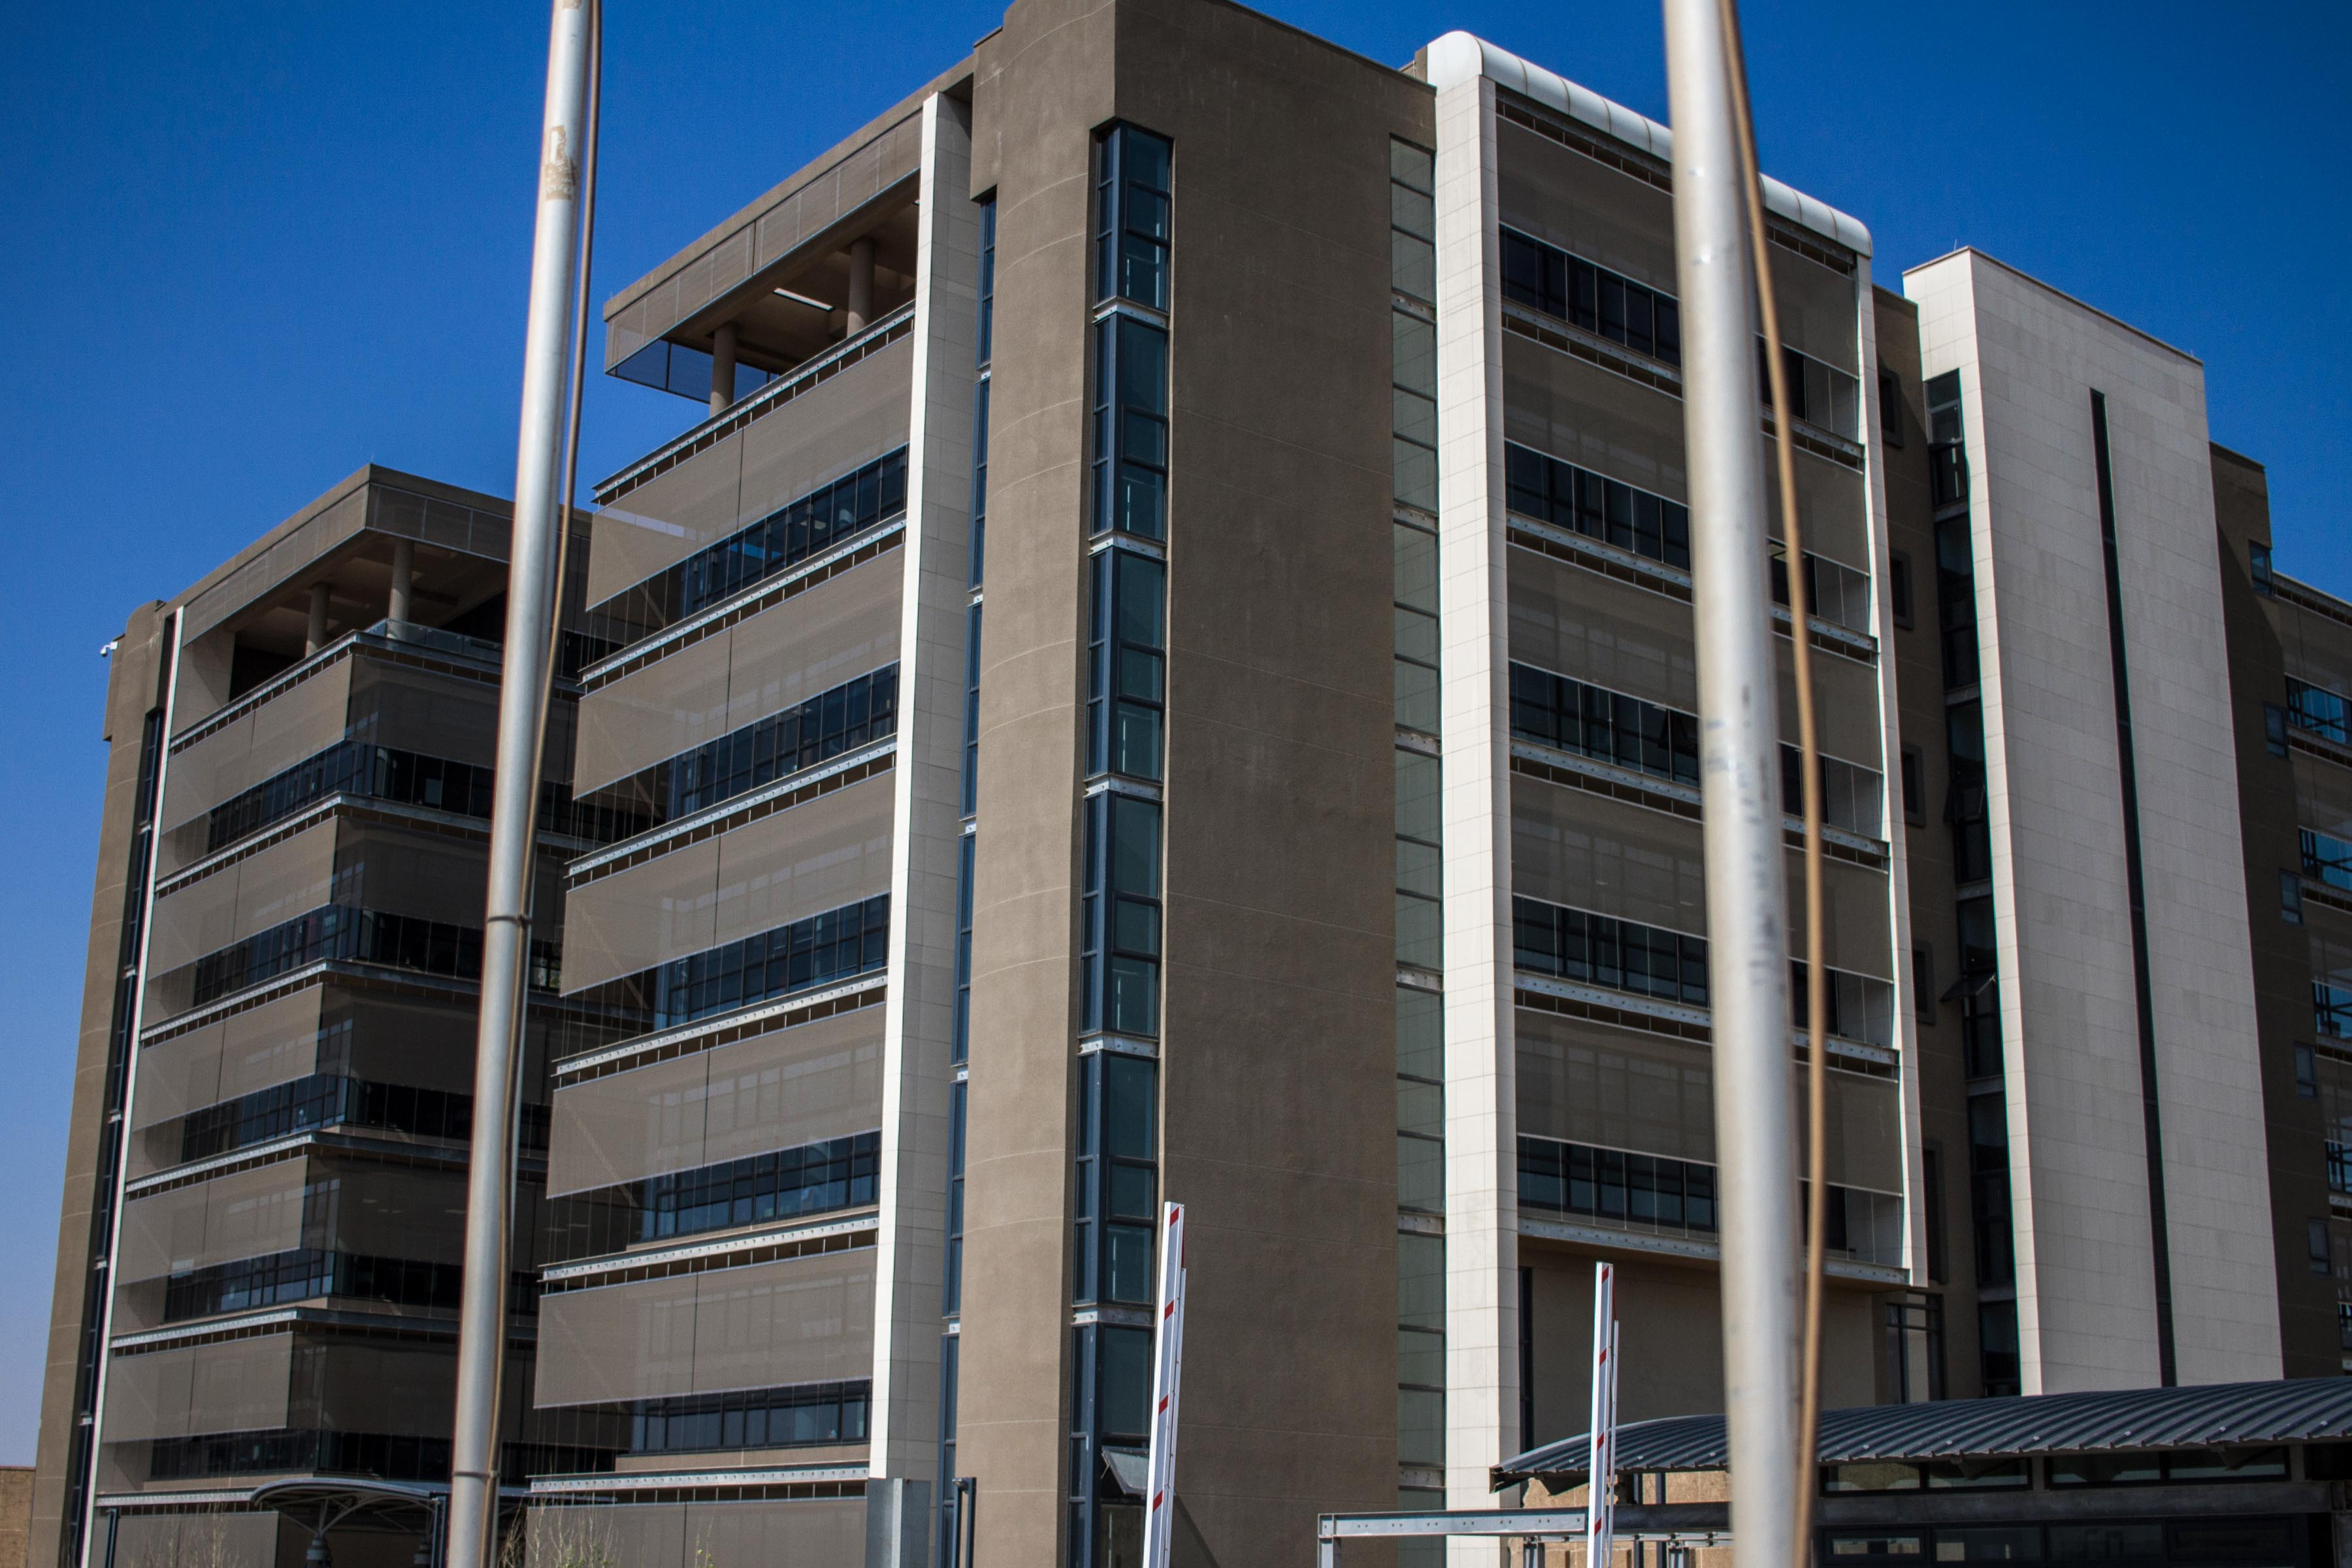 13 September 2019: The controversial building that cost the Newcastle municipality R400 million to build. Residents refer to the seven-storey structure as 'Dubai' and say it was a waste of taxpayers' money.